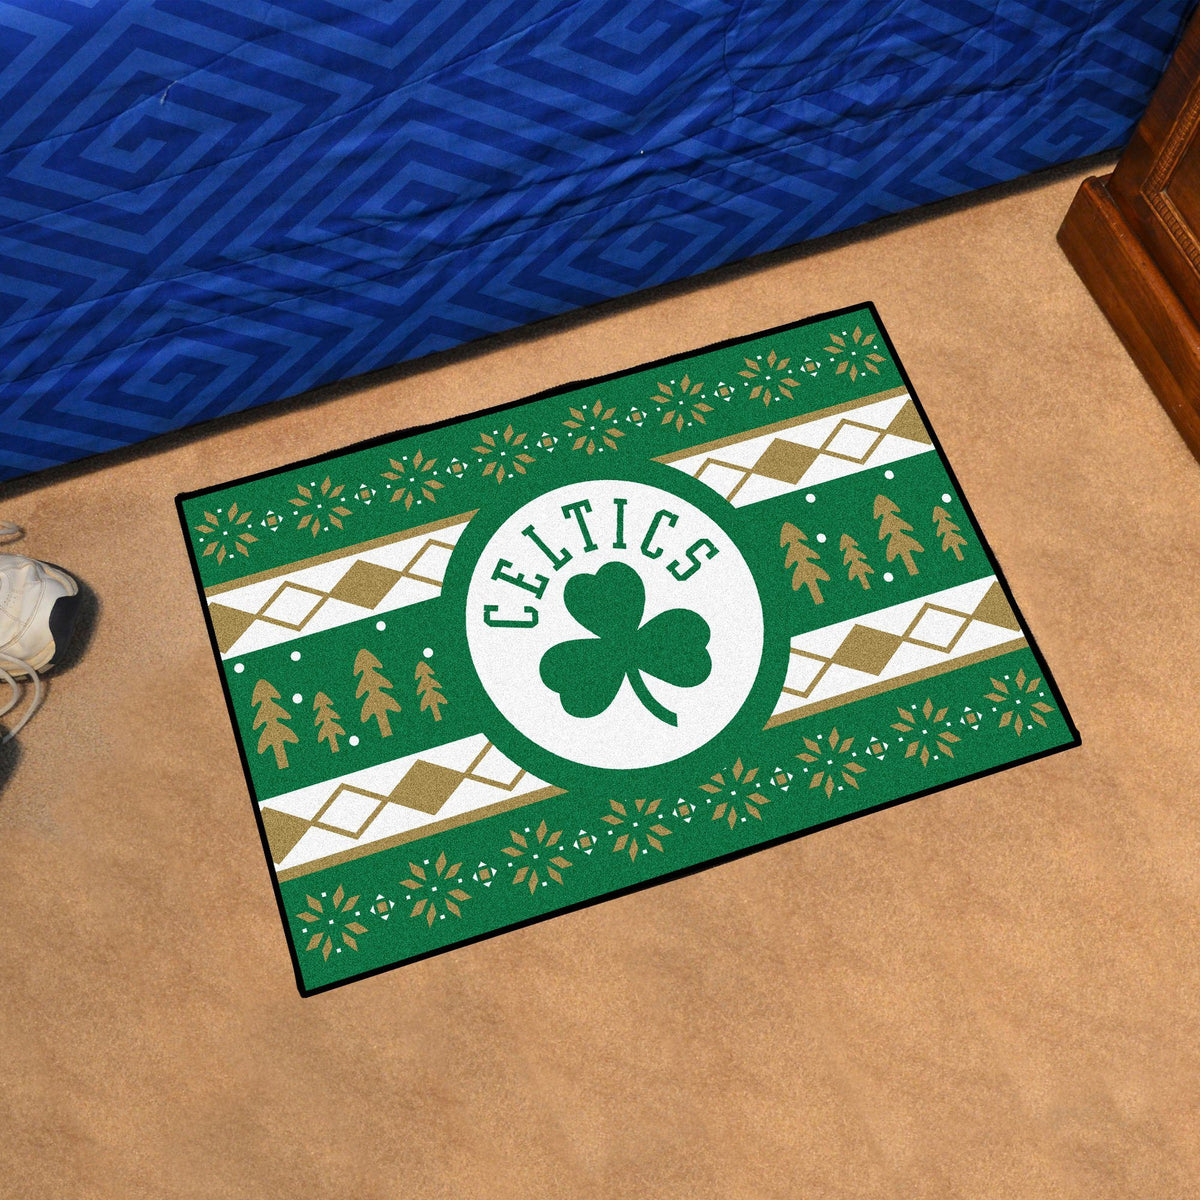 NBA - Holiday Sweater Starter Mat NBA Mats, Rectangular Mats, Holiday Sweater Starter Mat, NBA, Home Fan Mats Boston Celtics